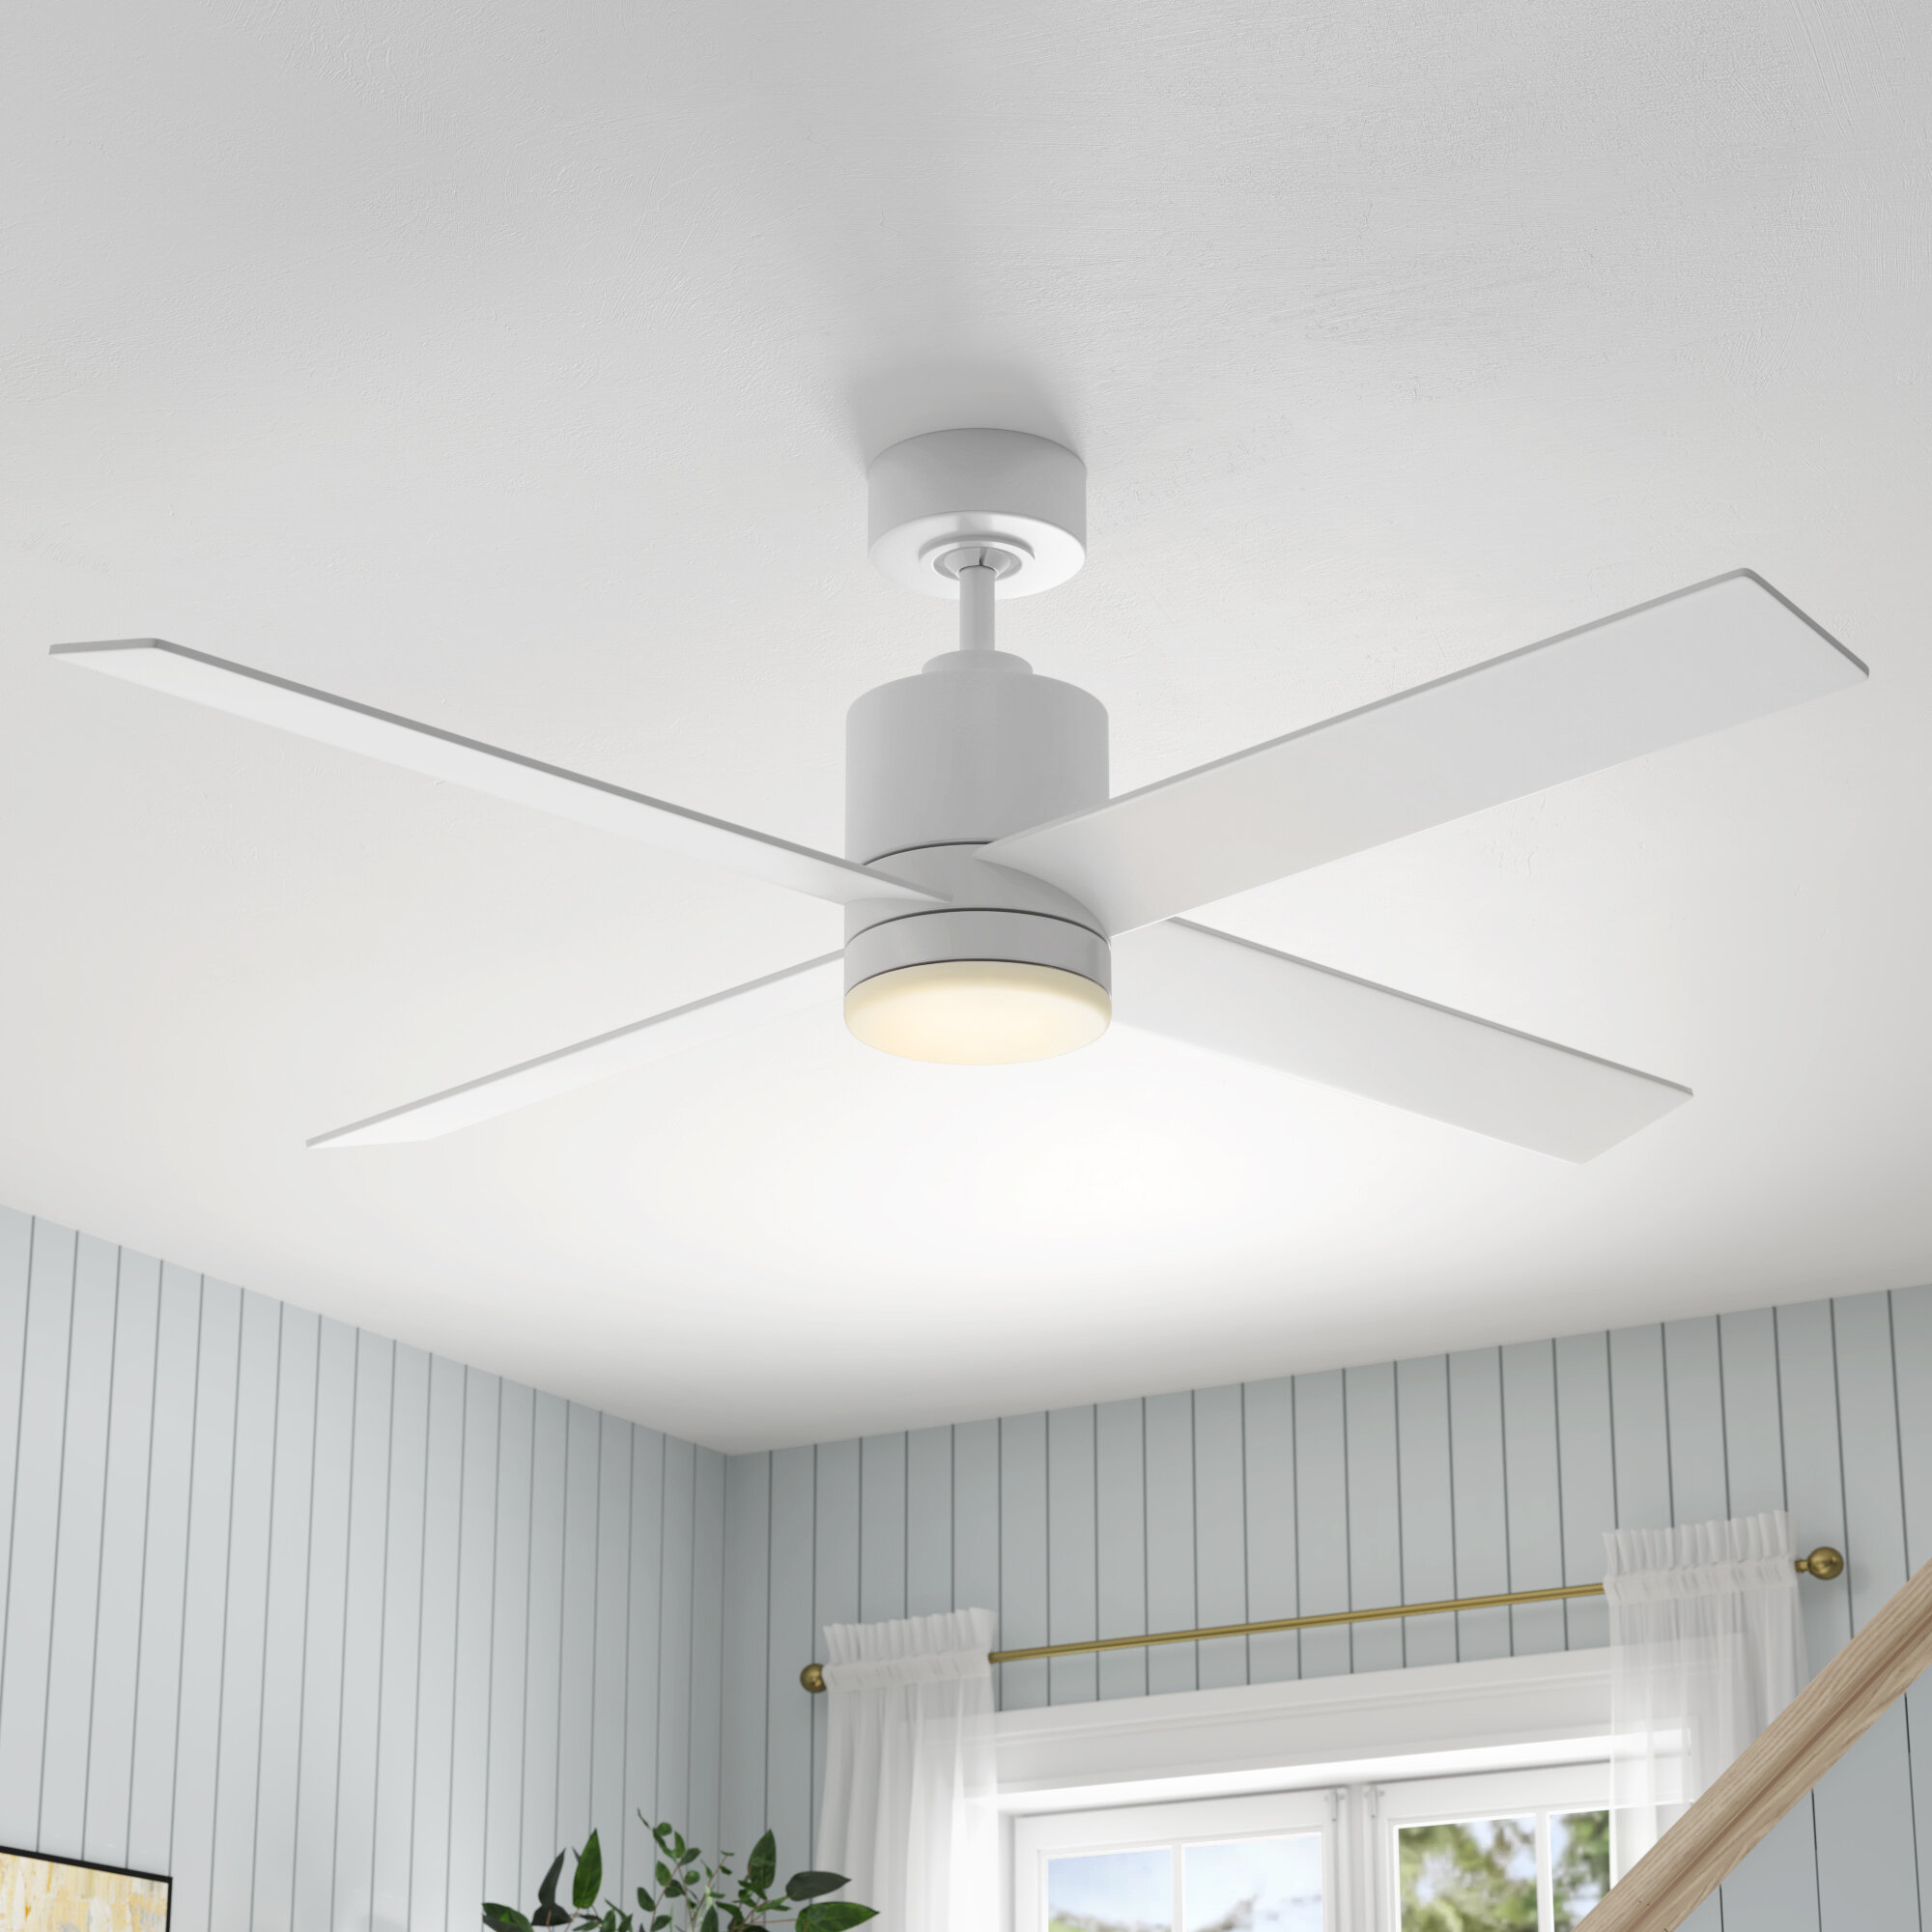 Ceiling Fan Speed Control For One Of Those 3 Or 4 Blade Decorative